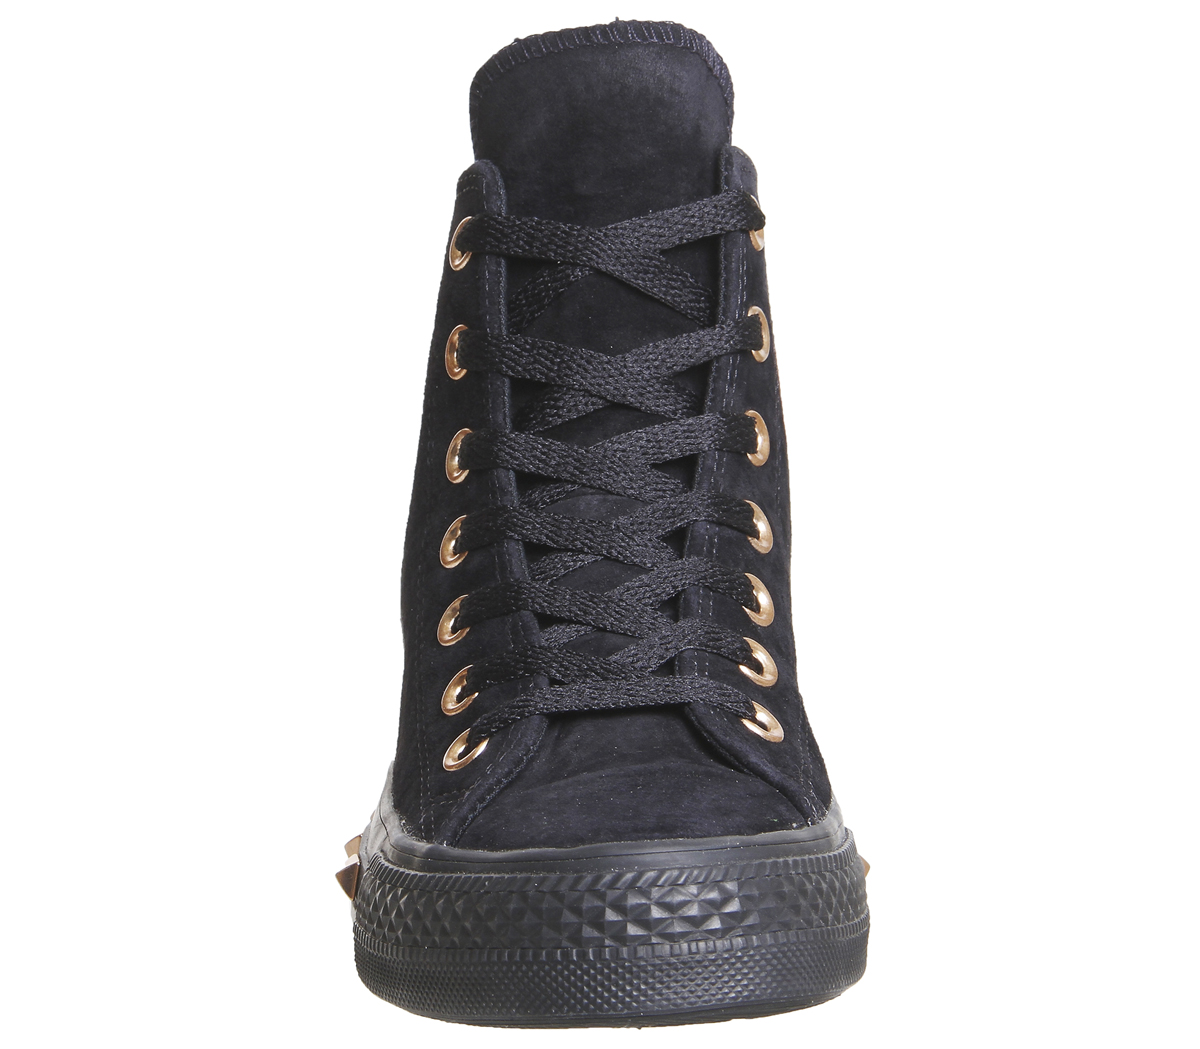 efcf20c49 Sentinel Womens Converse All Star Hi Leather STUD BLACK PARTICLE BEIGE BLUSH  Trainers Sh